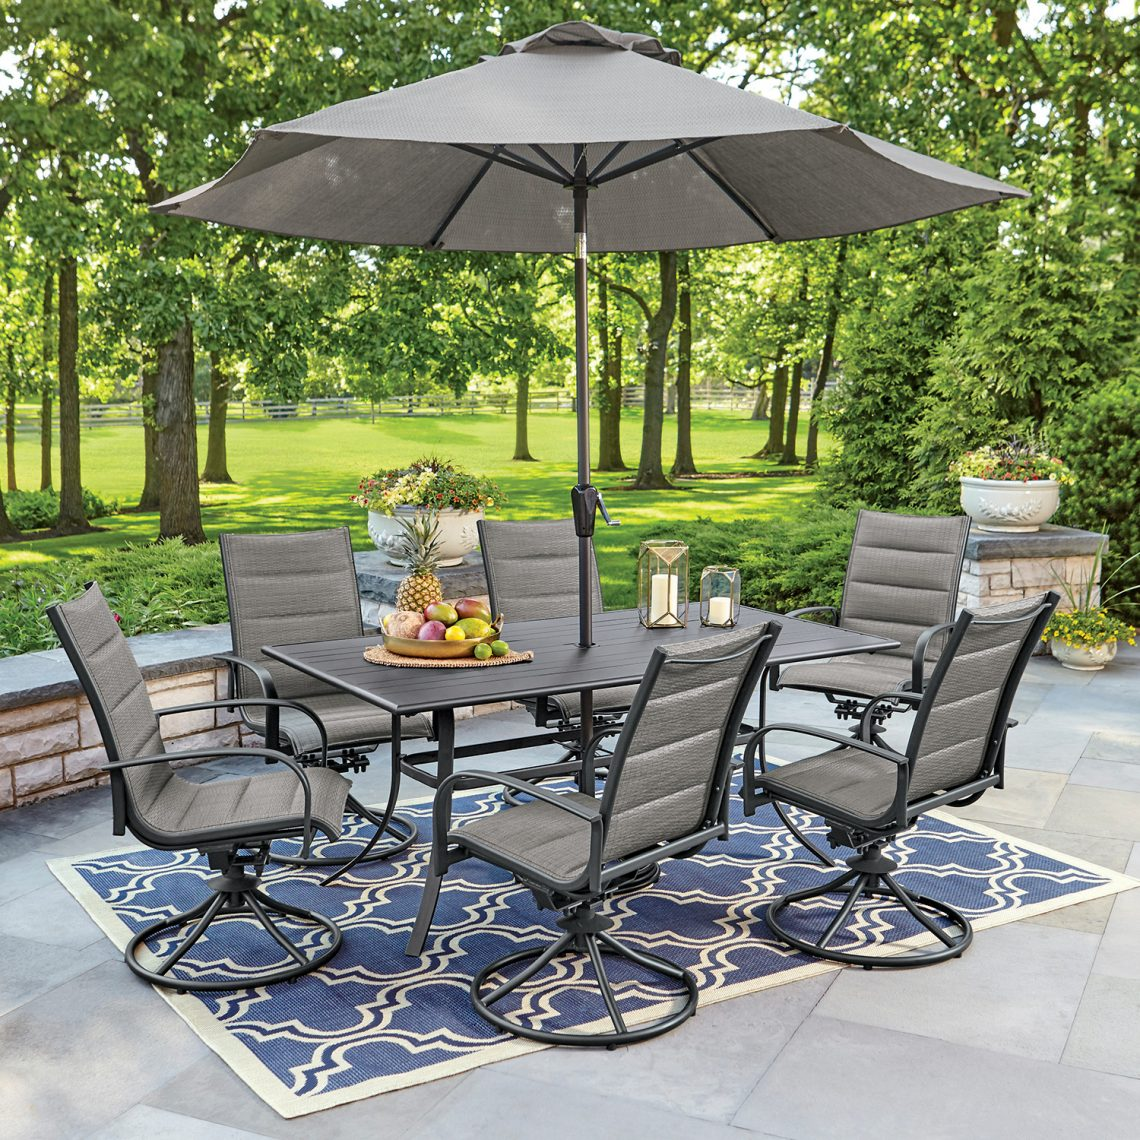 Outdoor Furniture Decor To At Hortons Home Lighting In La Grange We Offer Variety Of Patio Sets Bistro Hightop Benches And Outdoor Decor If Youu0027re Redesigning Your Outdoor Furniture Grange Transform Your Backyard Patio